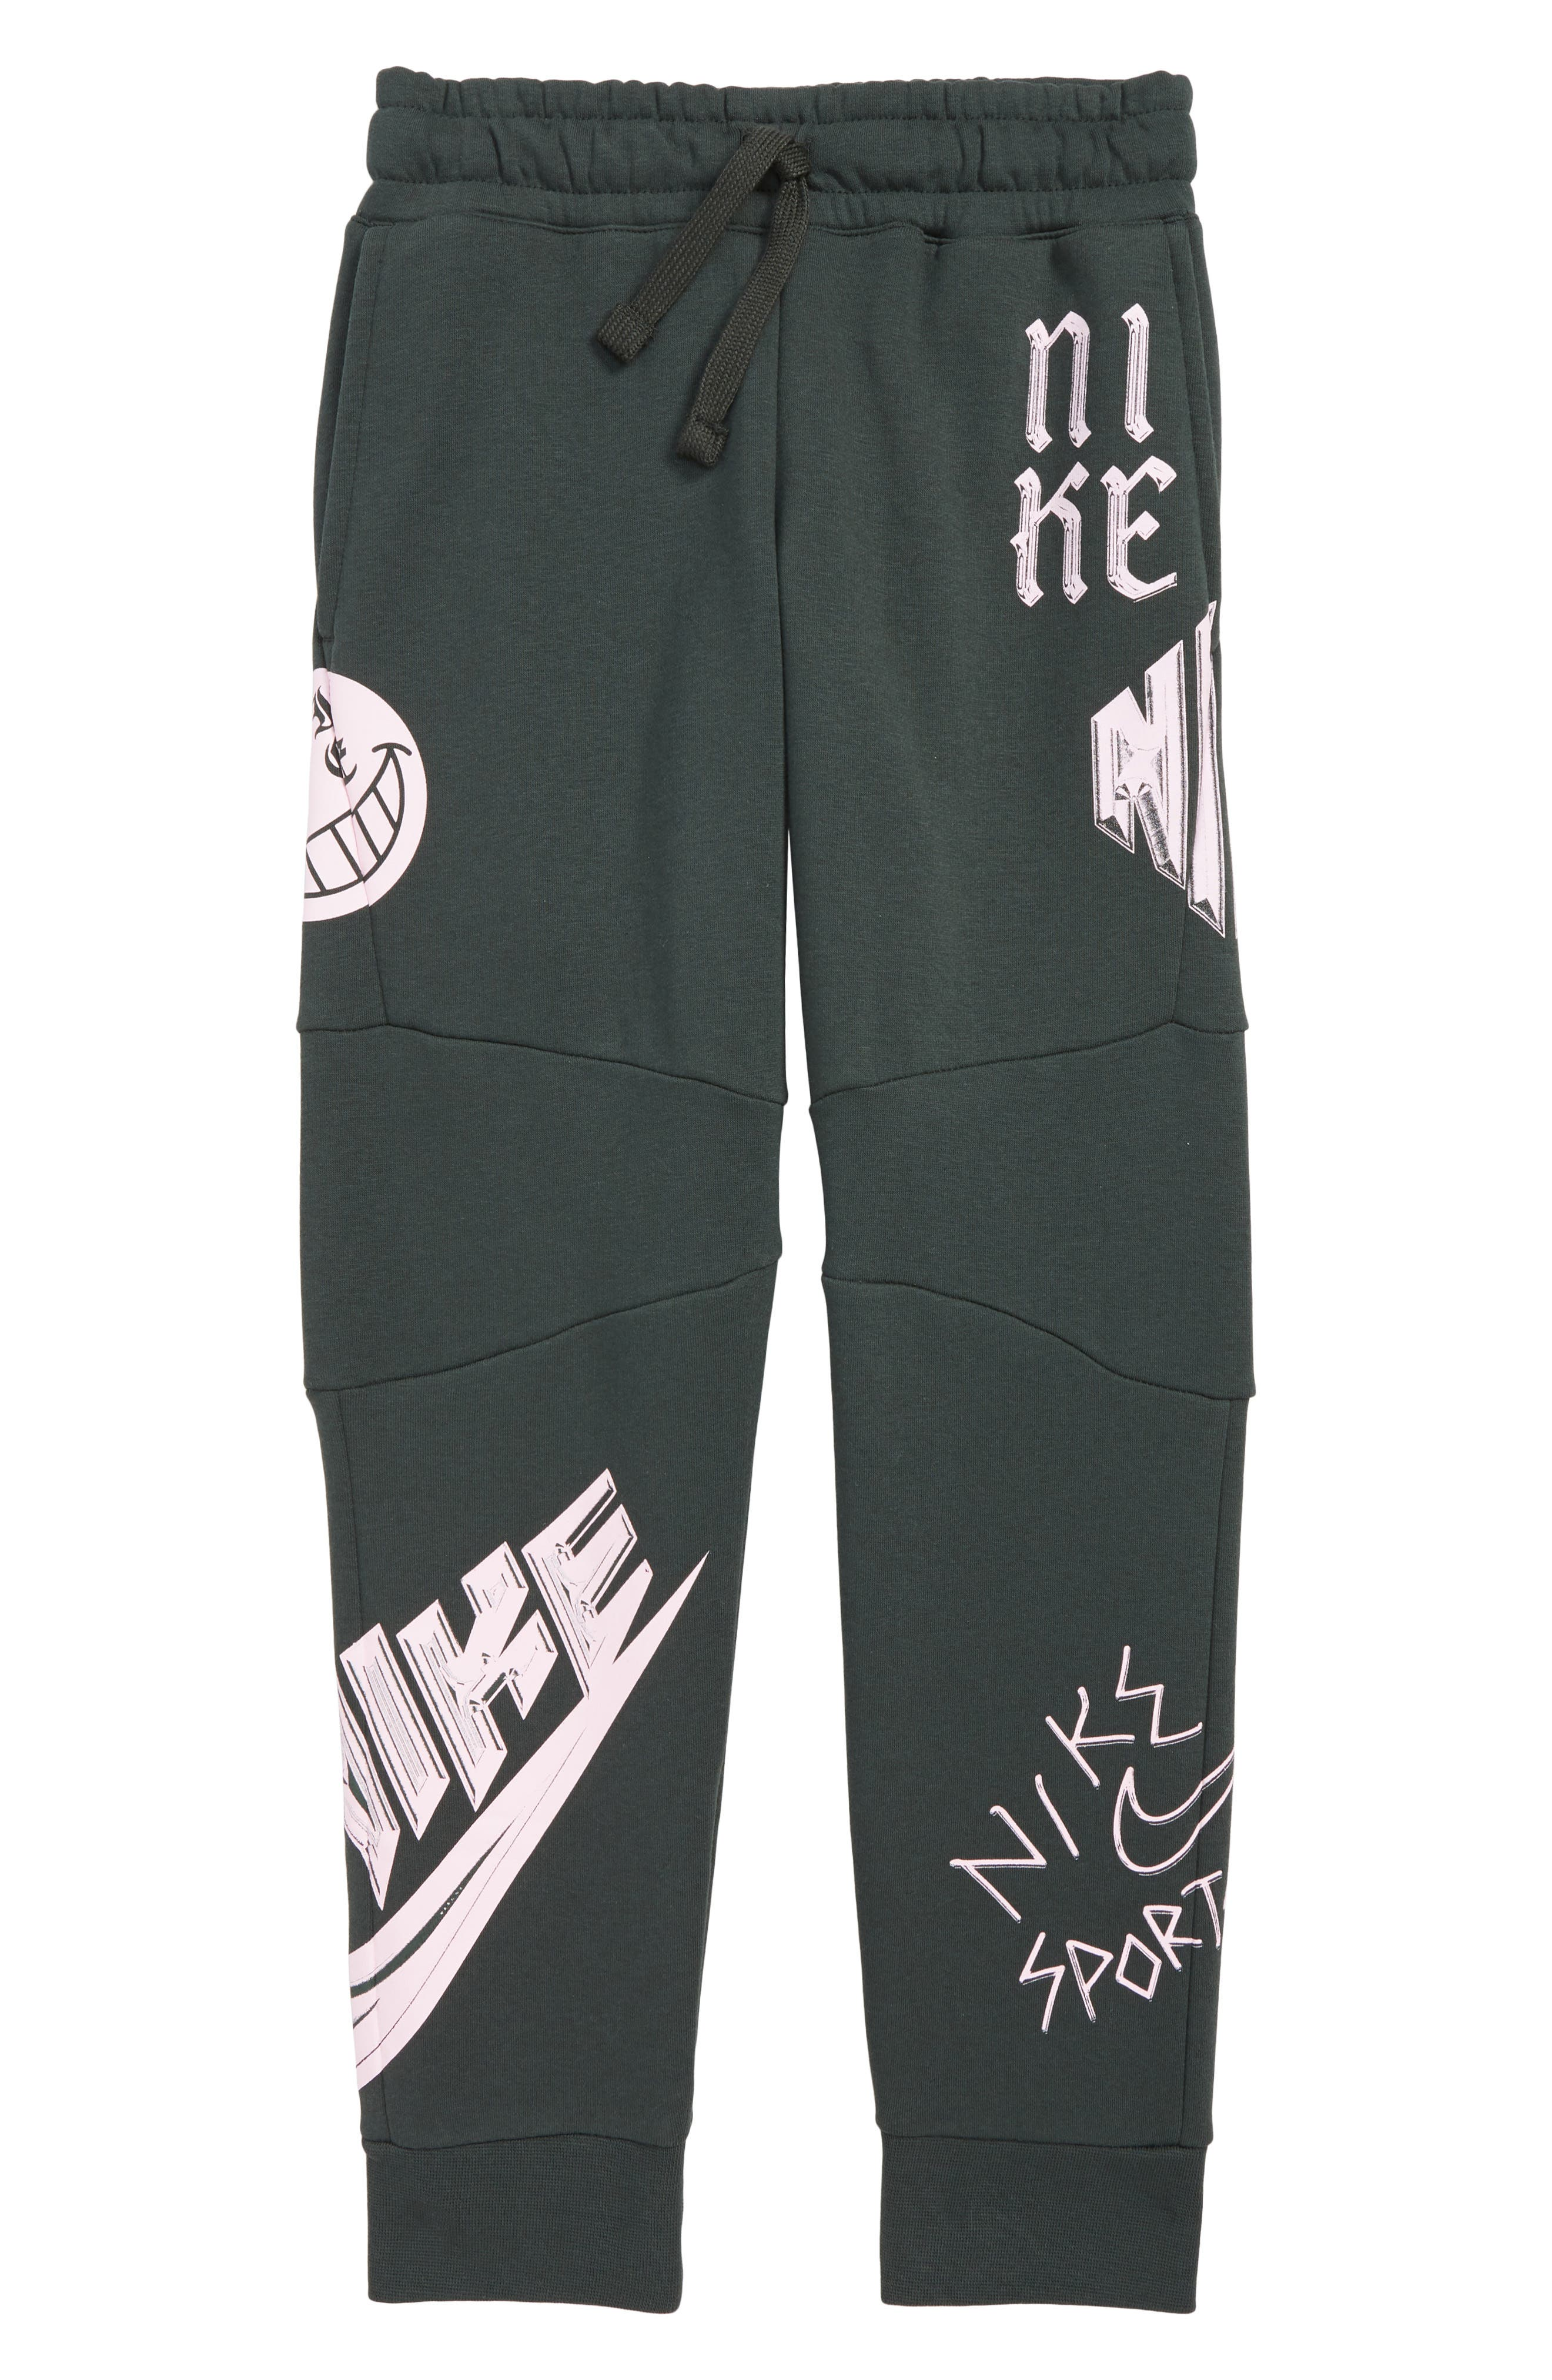 NIKE, Sportswear Energy GFX Fleece Jogger Pants, Main thumbnail 1, color, OUTDOOR GREEN/ PINK FOAM